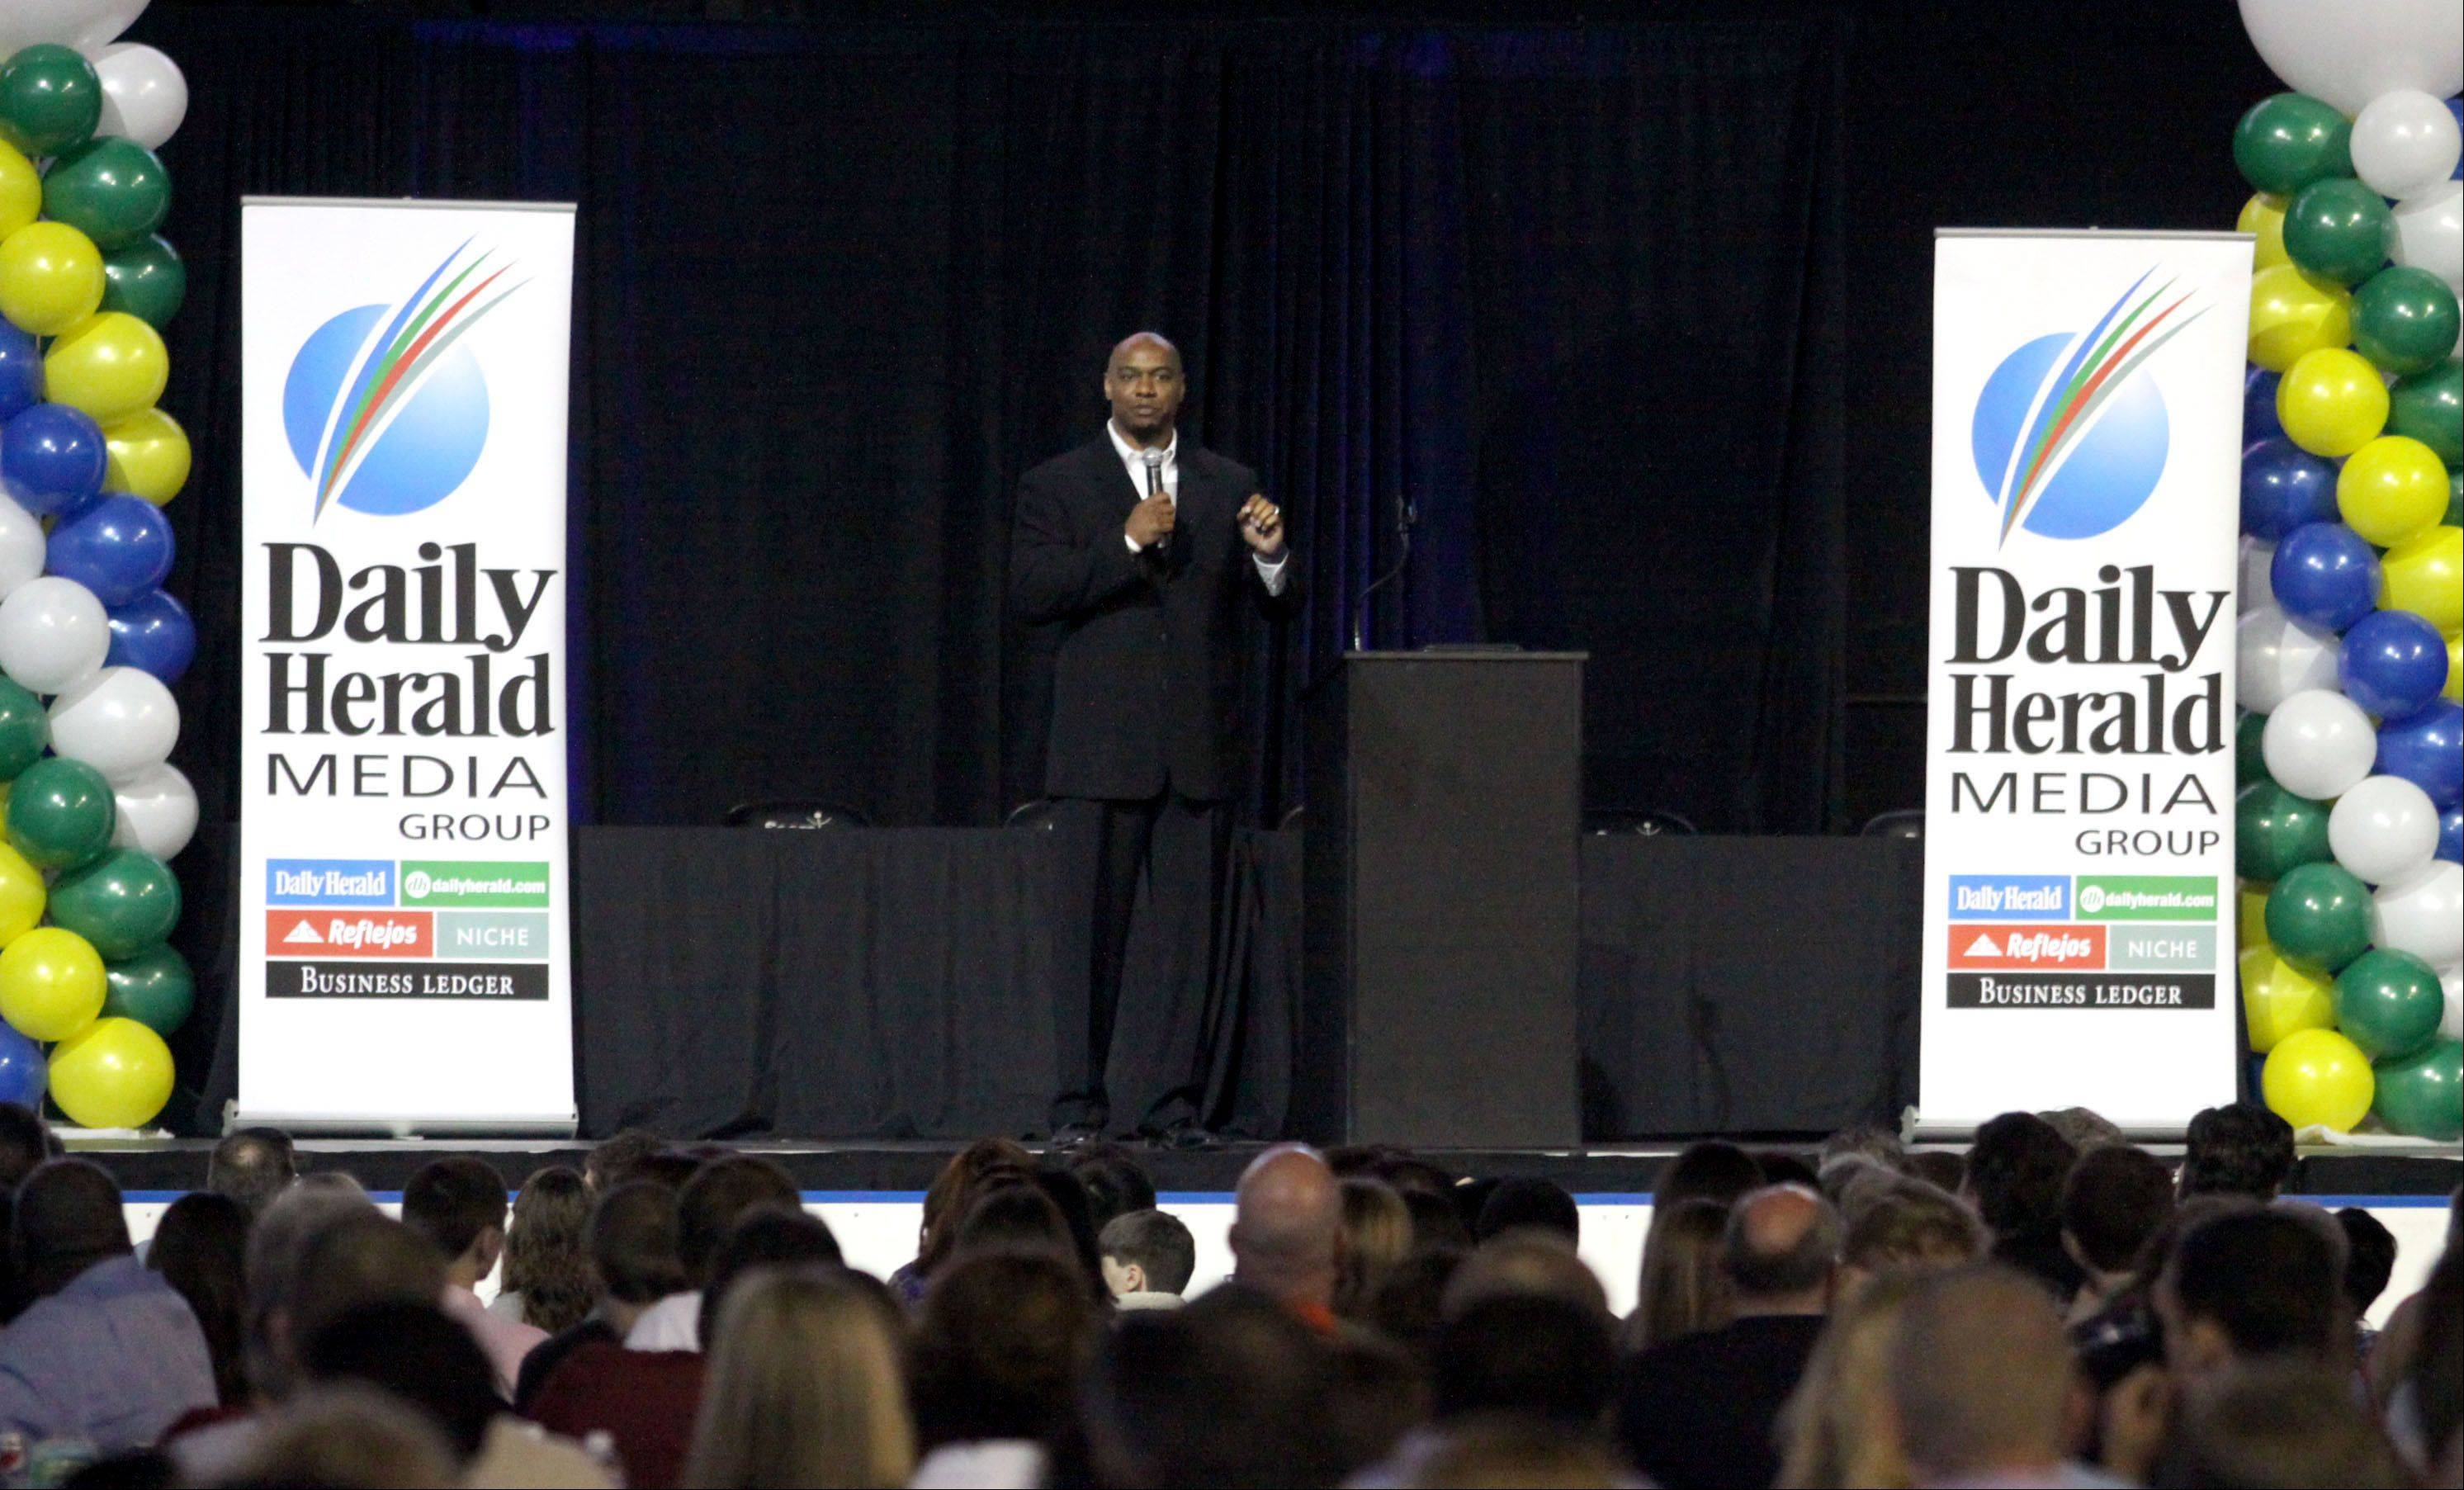 Patrick Kunzer/pkunzer@dailyherald.com Jarrett Payton, keynote speaker, offers his remarks during the Daily Herald Prep Sports Excellence Awards Ceremony at Sears Centre Arena in Hoffman Estates on Sunday.